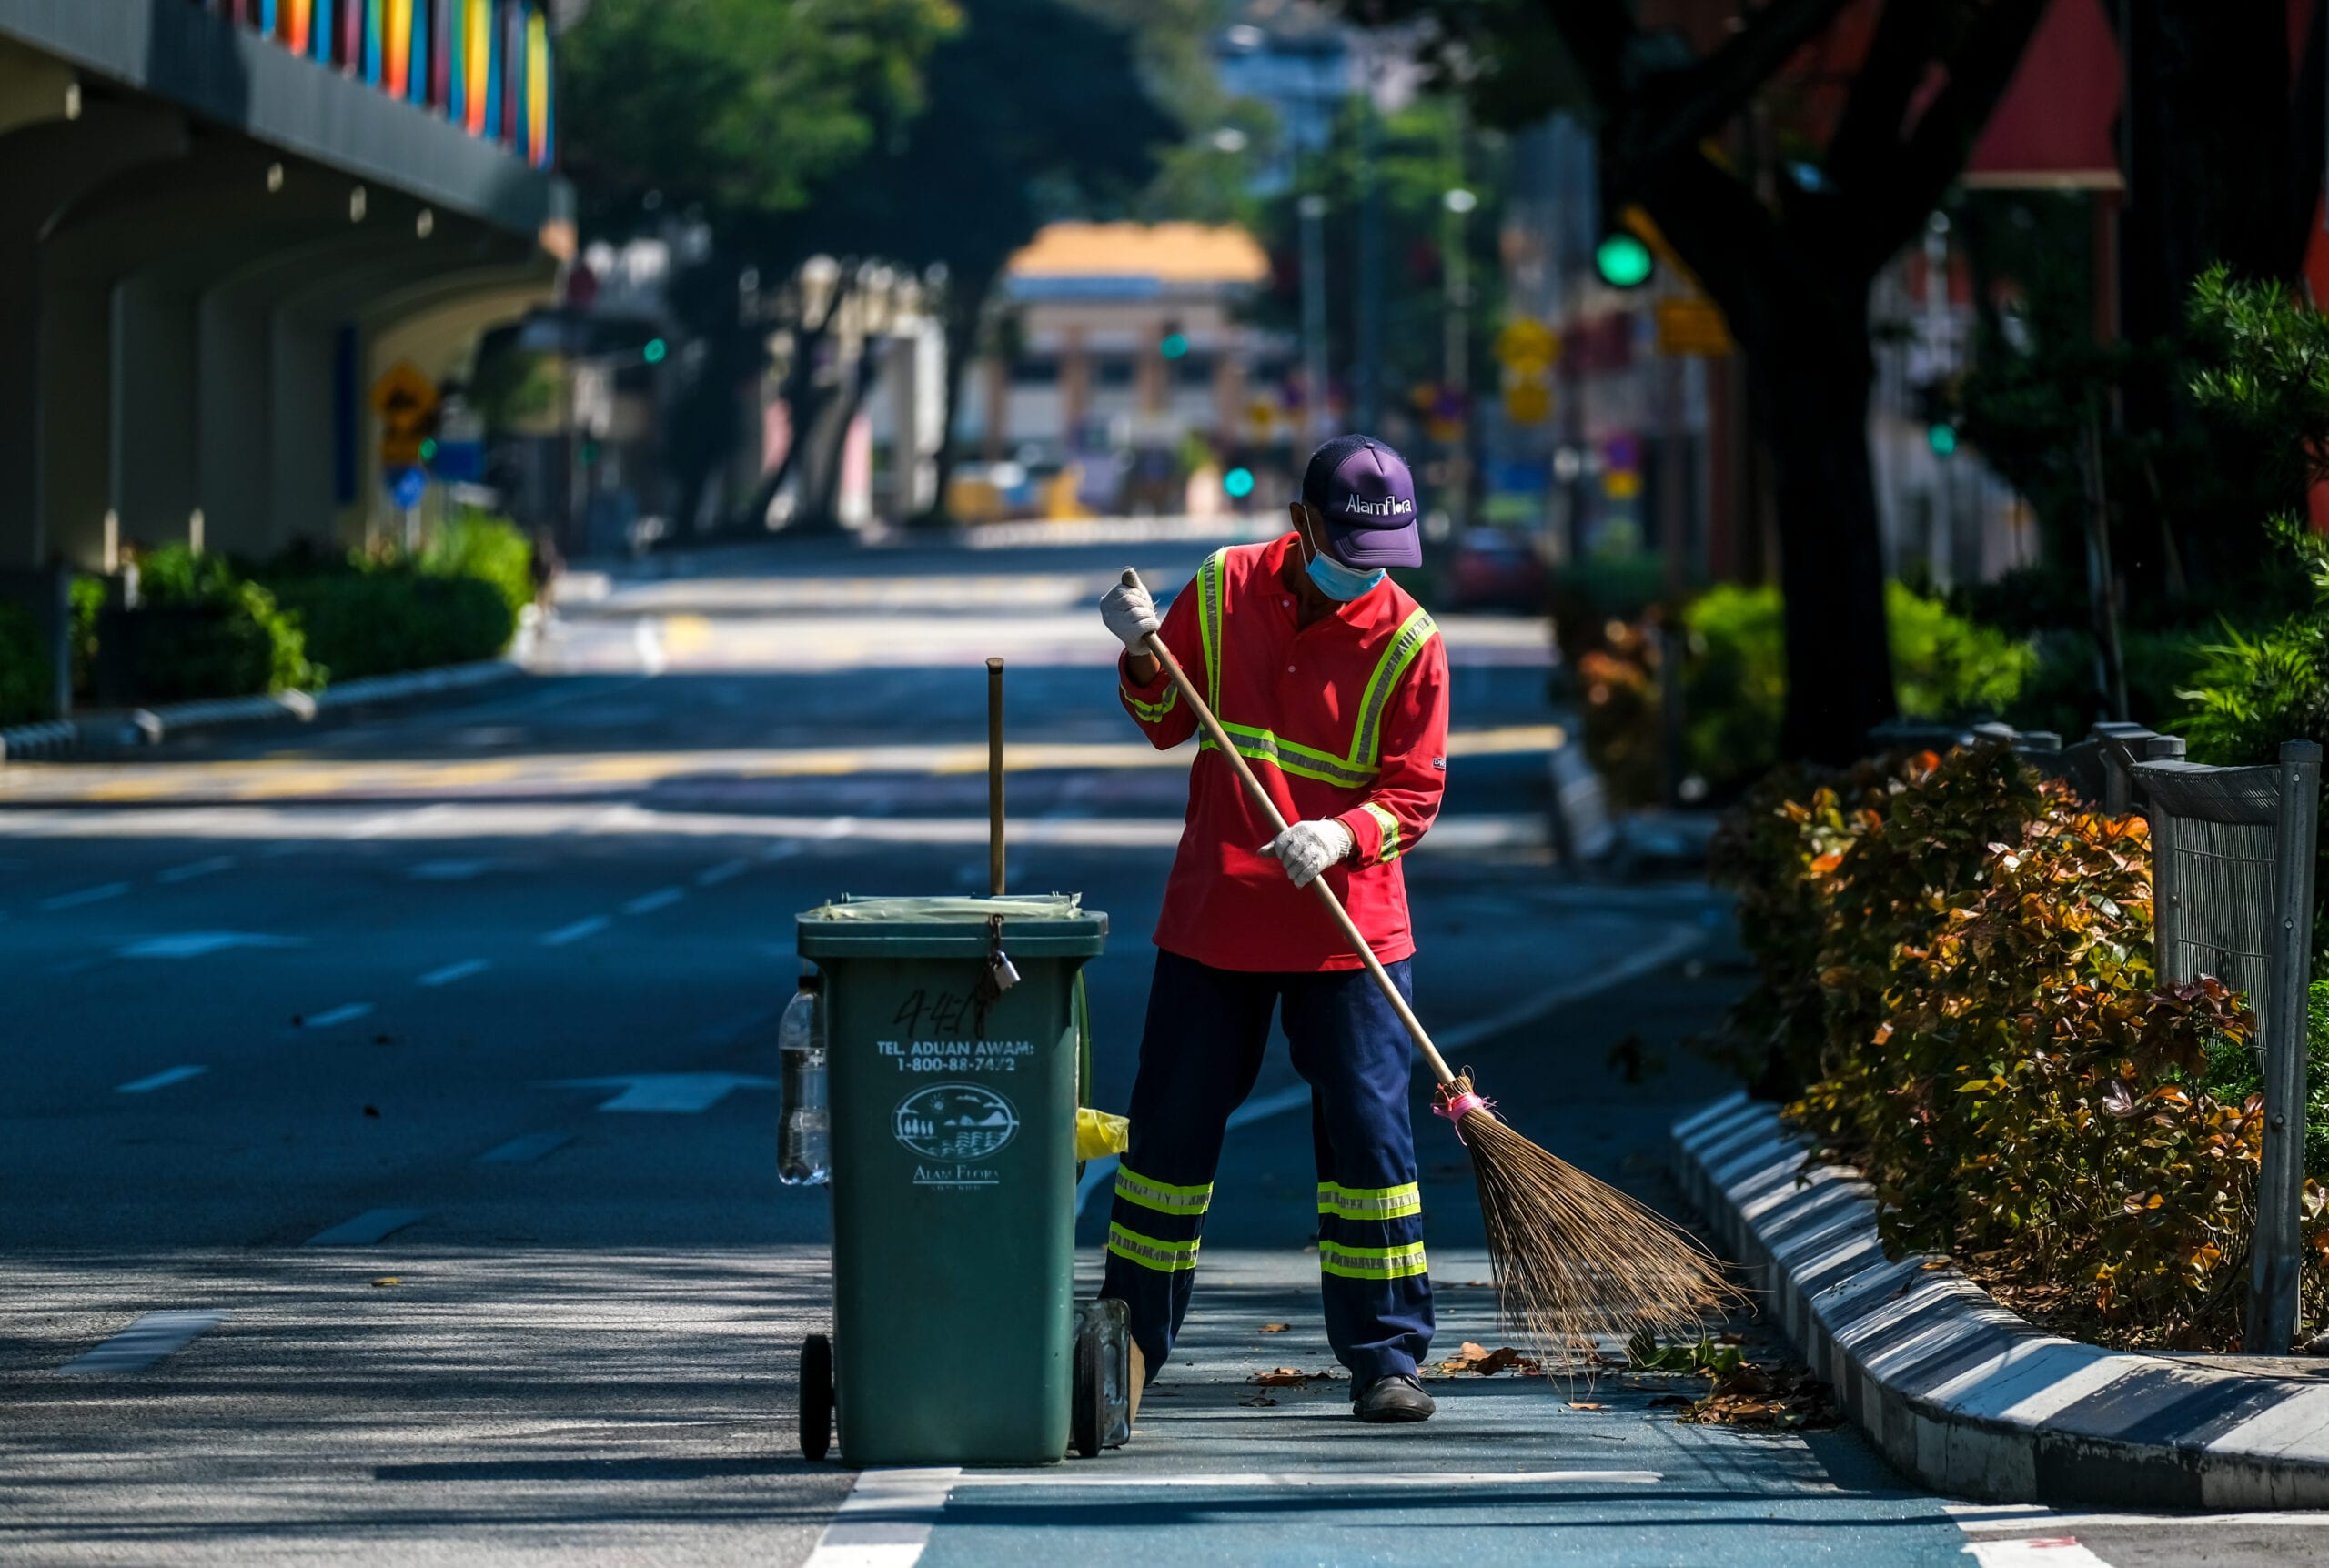 A worker cleaning Kuala Lumpur's empty streets during Malaysia's Movement Control Order (MCO) lockdown last year